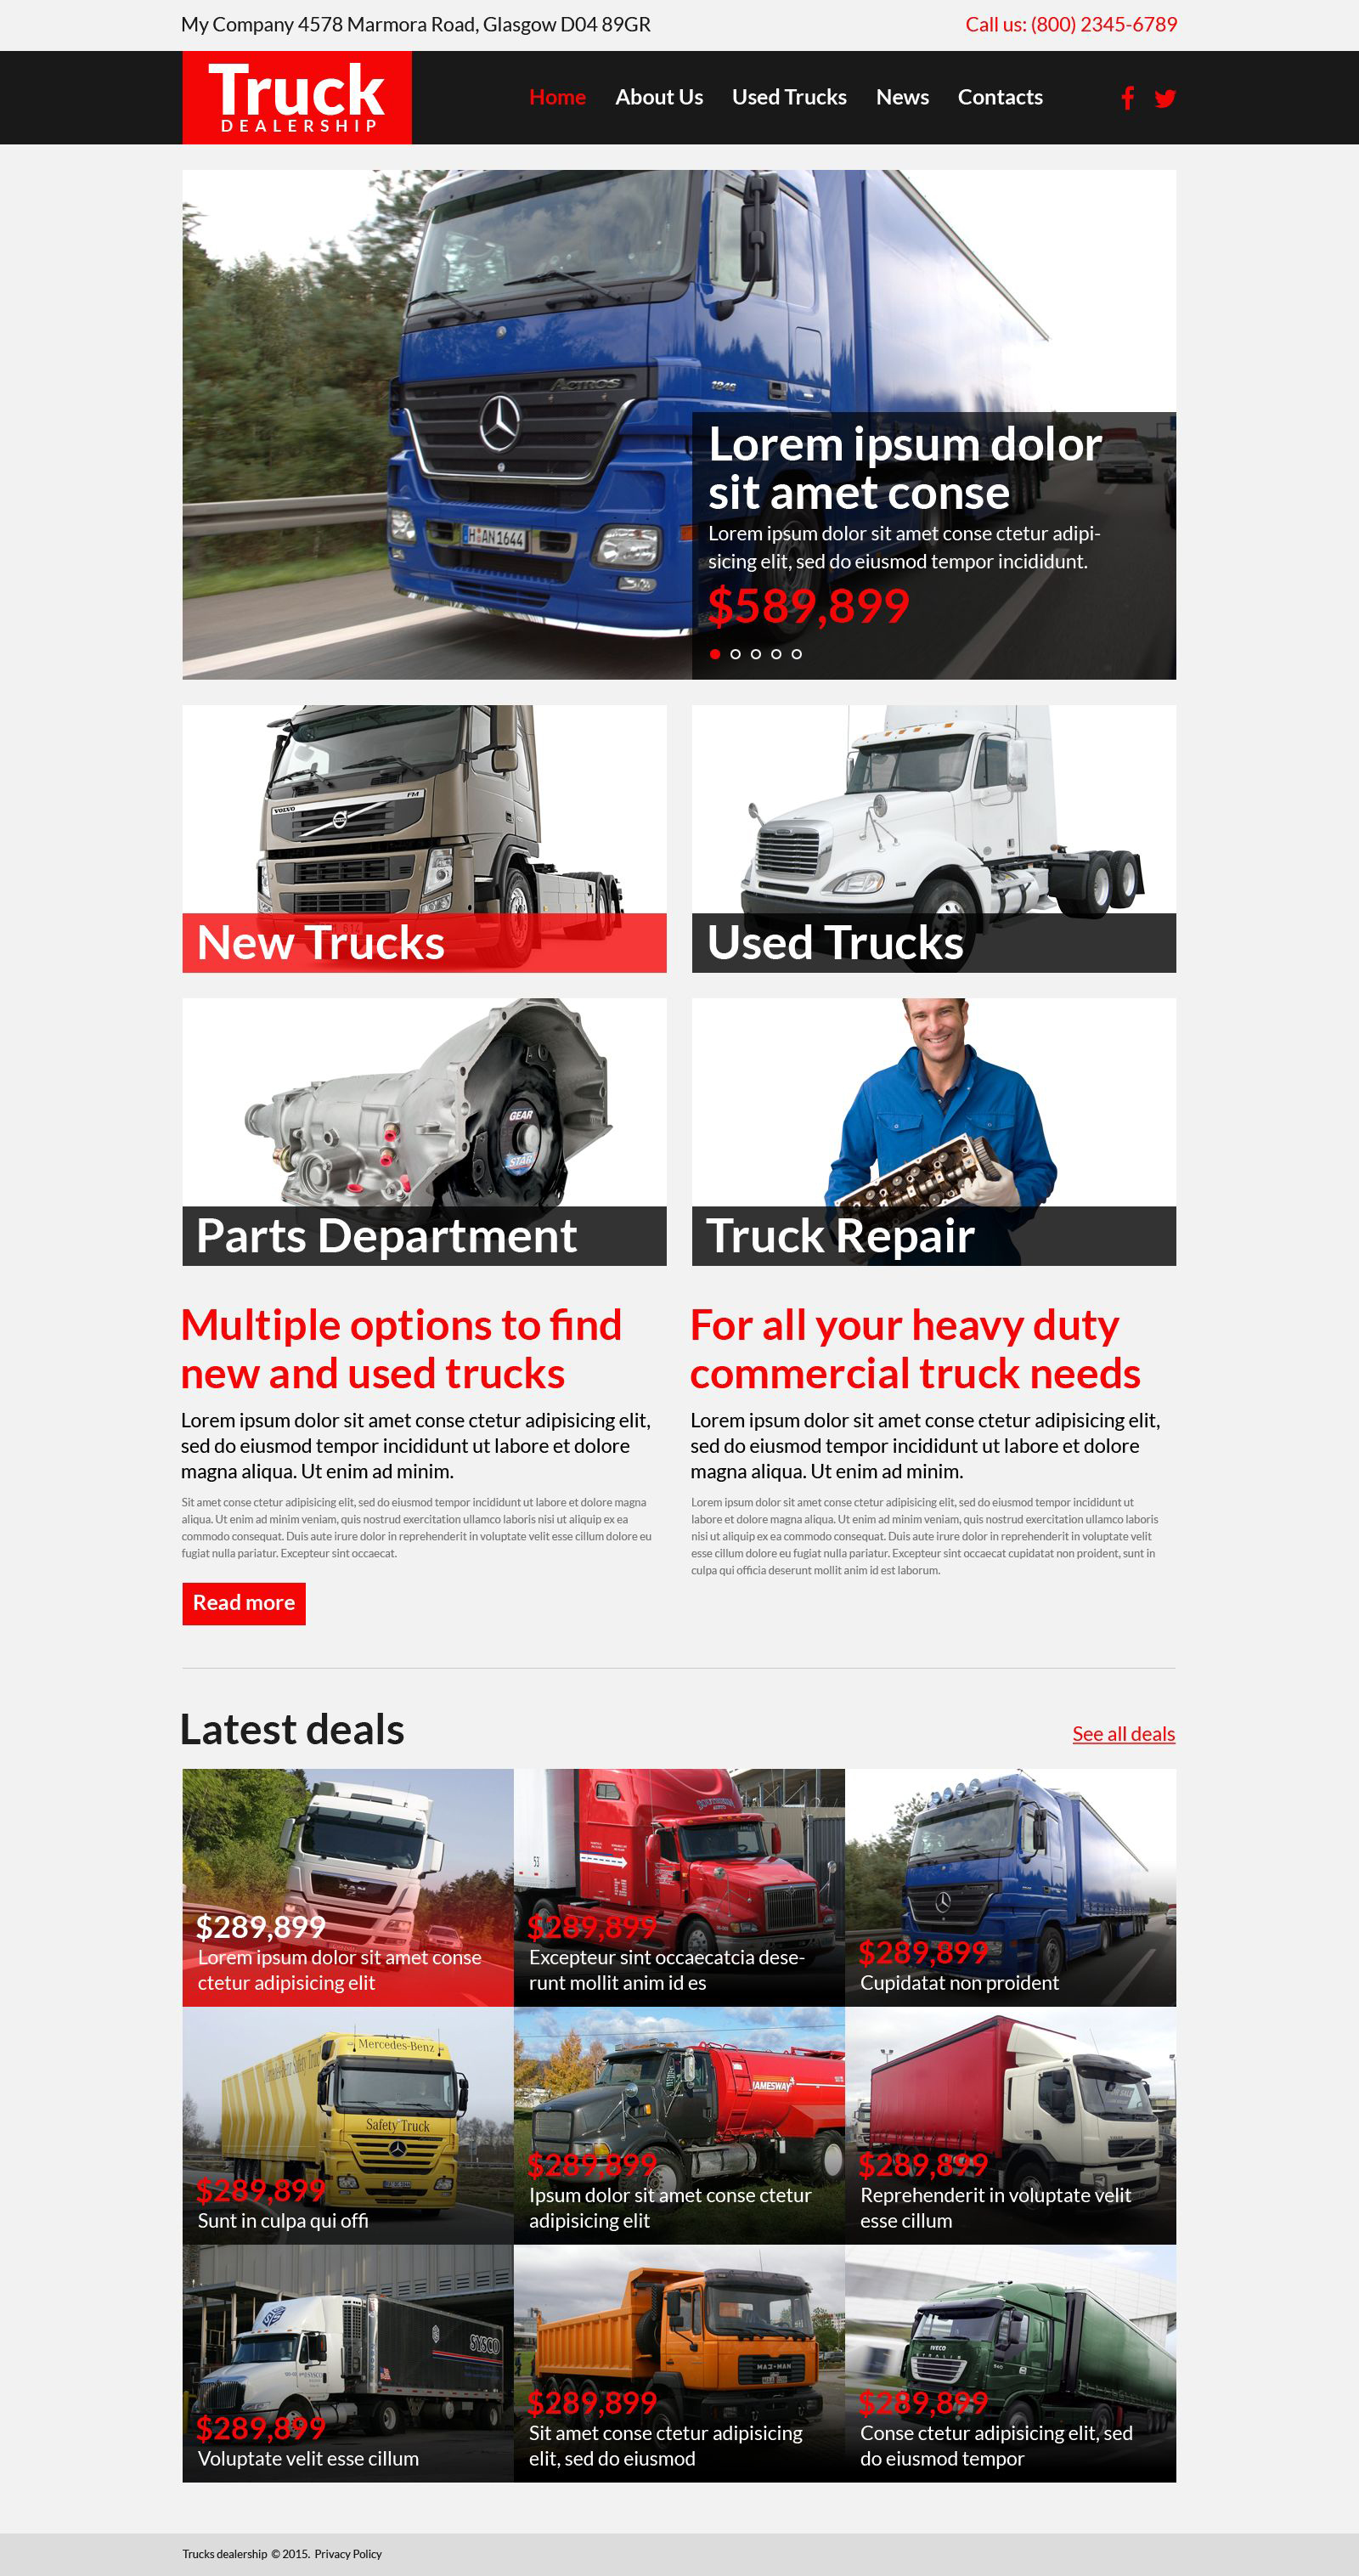 The Truck Dealership Bootstrap Design 53772, one of the best website templates of its kind (transportation, most popular), also known as truck dealership website template, cars website template, market website template, rental website template, auto dealer website template, improvement website template, new website template, used website template, certified website template, exhibition solution website template, market website template, research website template, vendor website template, motor website template, price website template, transport website template, speed website template, Volvo Mercedes driving website template, off-road website template, racing website template, driver website template, track website template, race website template, urban website template, freeway website template, highway website template, road website template, vehicle website template, spar and related with truck dealership, cars, market, rental, auto dealer, improvement, new, used, certified, exhibition solution, market, research, vendor, motor, price, transport, speed, Volvo Mercedes driving, off-road, racing, driver, track, race, urban, freeway, highway, road, vehicle, spar, etc.